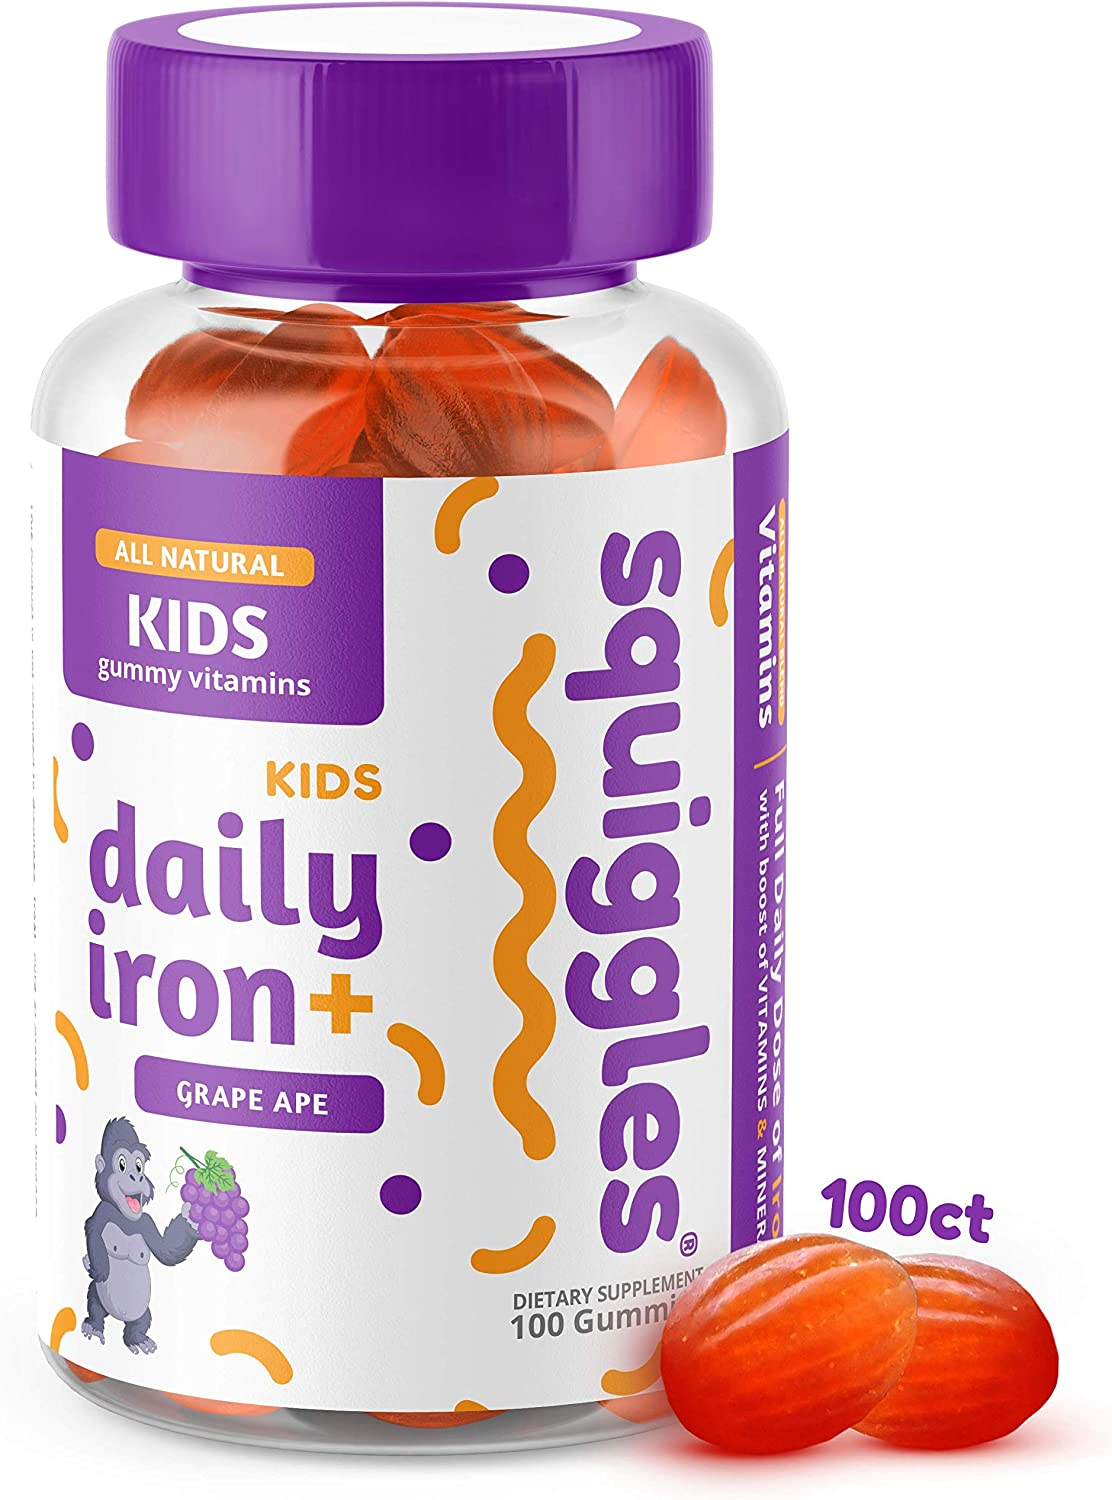 Kids Daily Iron+ Gummies Large discharge sale by Squiggles Cheap Low 100ct. All-Natural